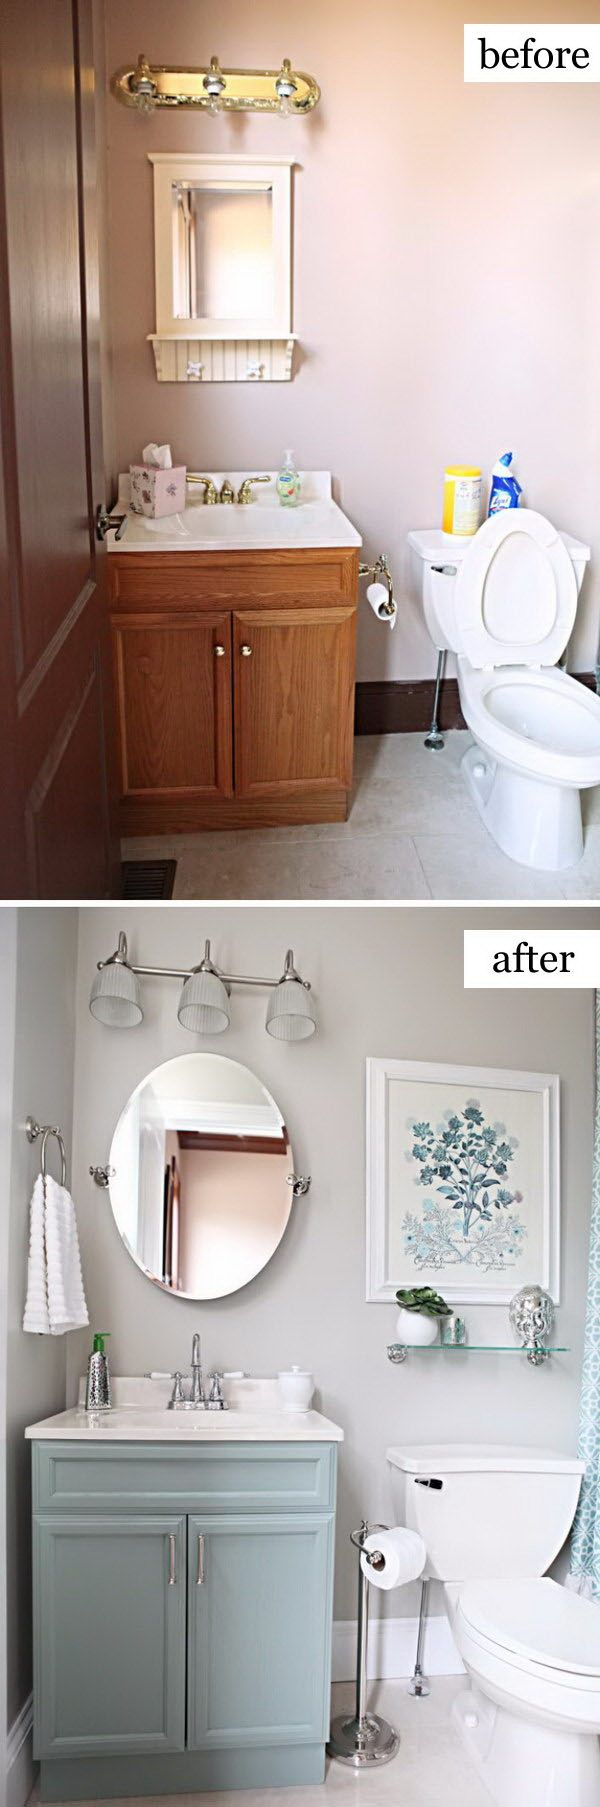 Growing weary of your outdated bathroom? Weu2019ve got excellent DIY bathroom ideas to inspire your renovation plans. <iframe src=